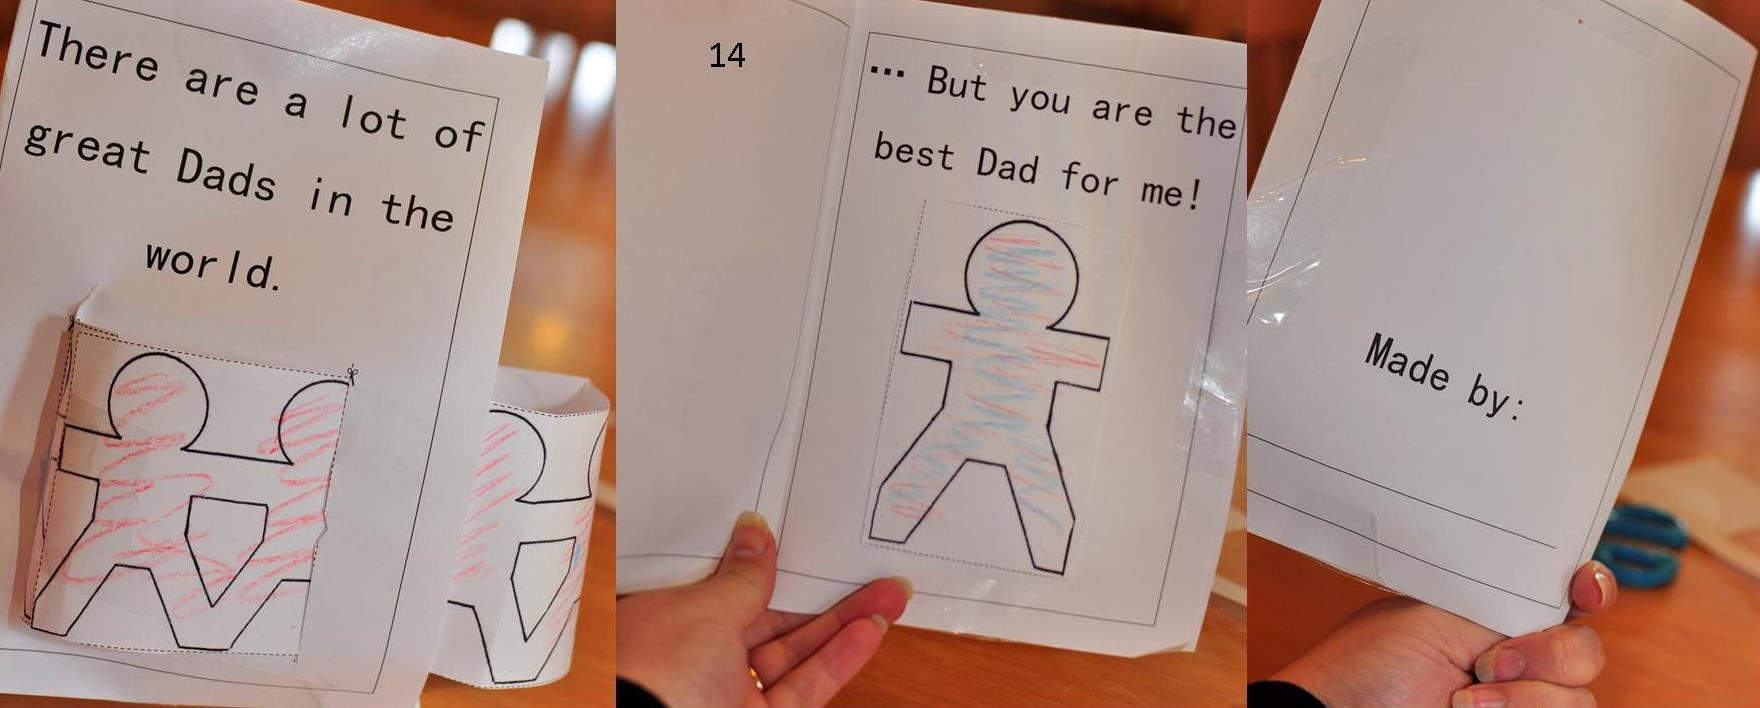 father's day : the best dad for me